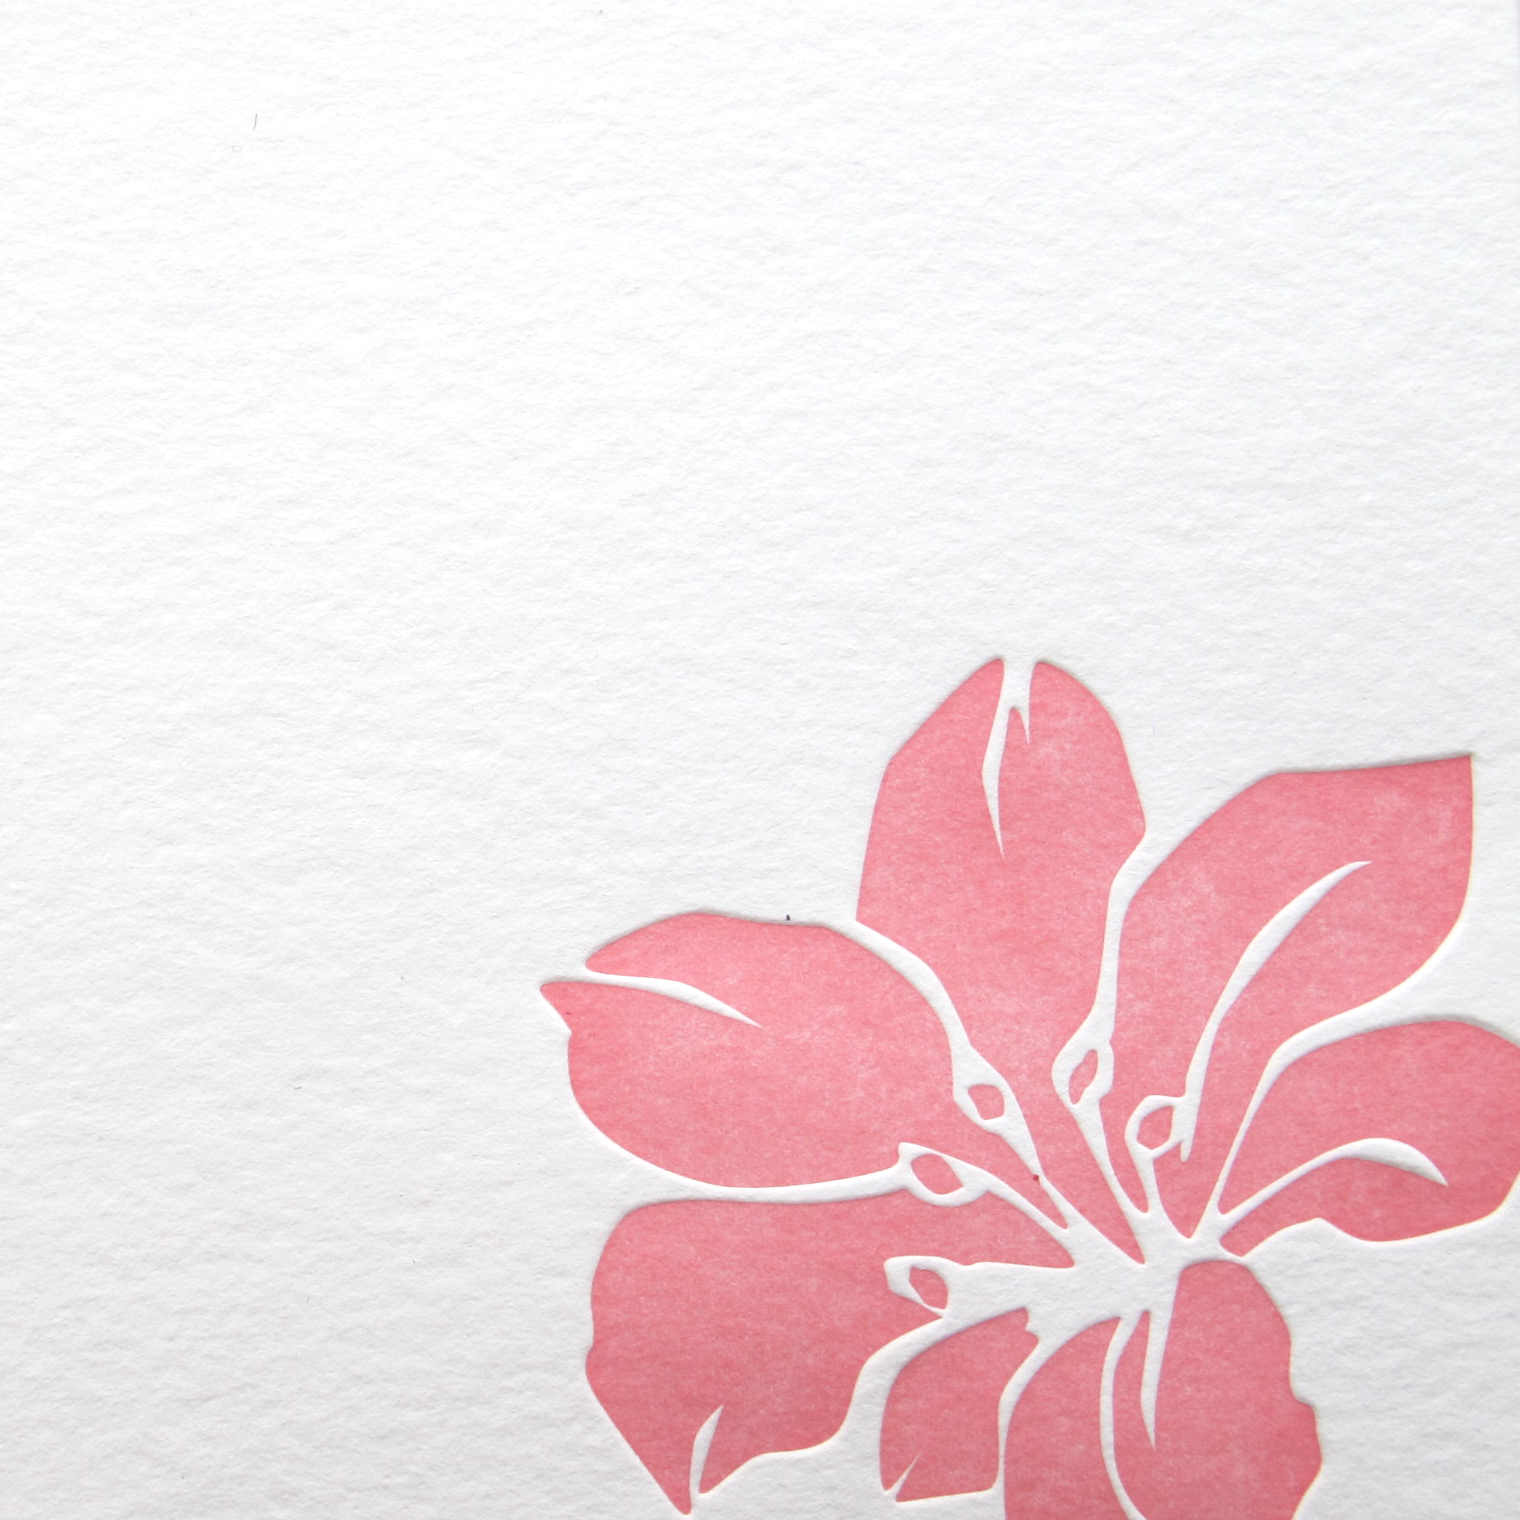 stationery_hibiscus_3.jpg